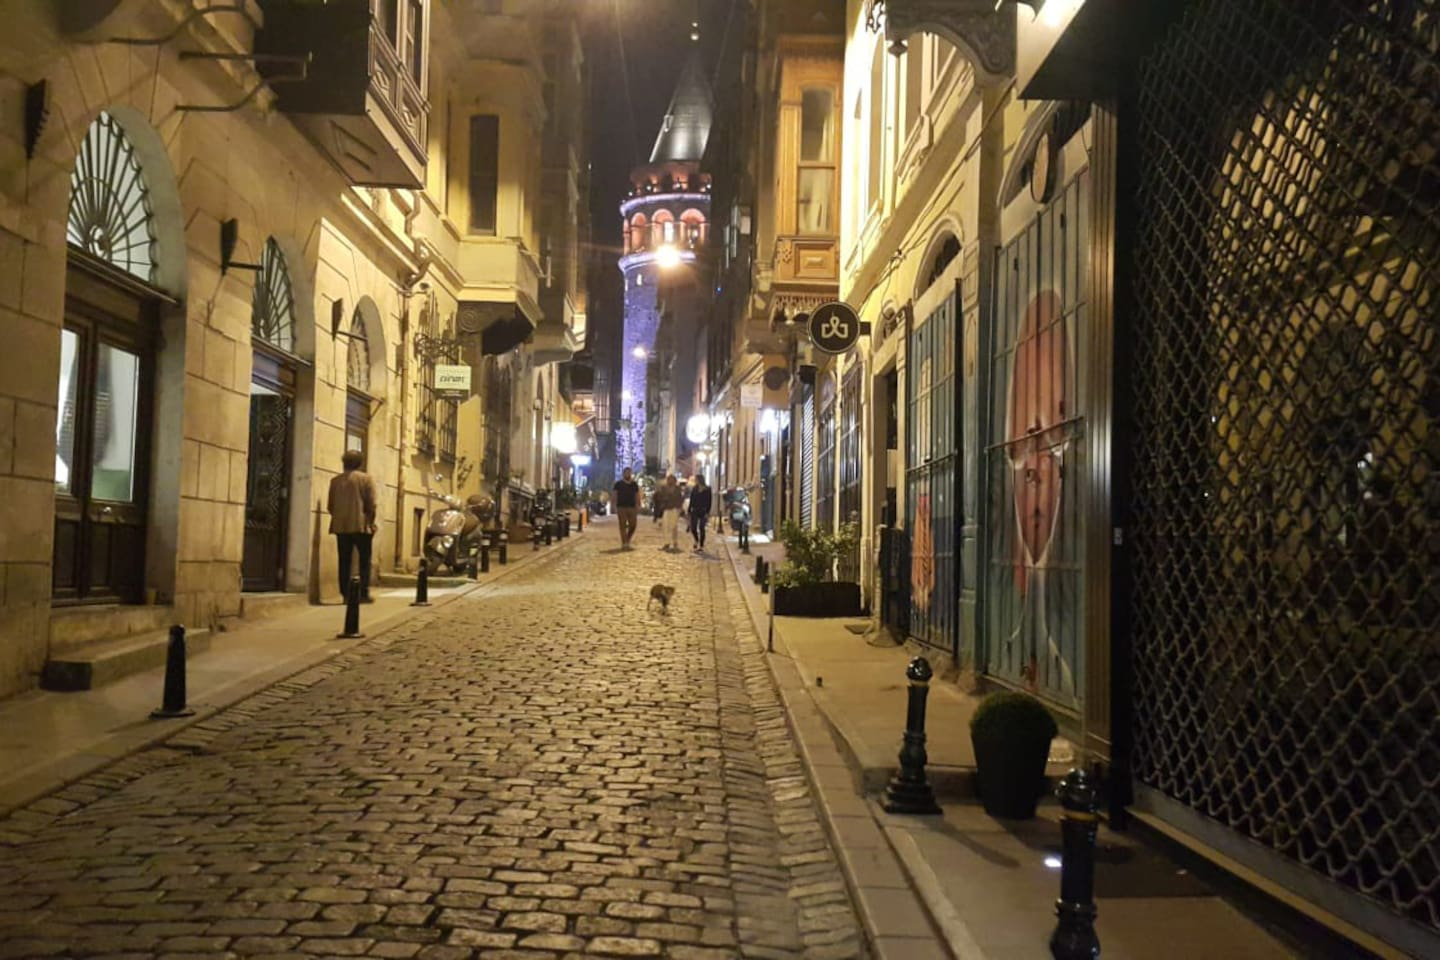 Street view / Galata Tower